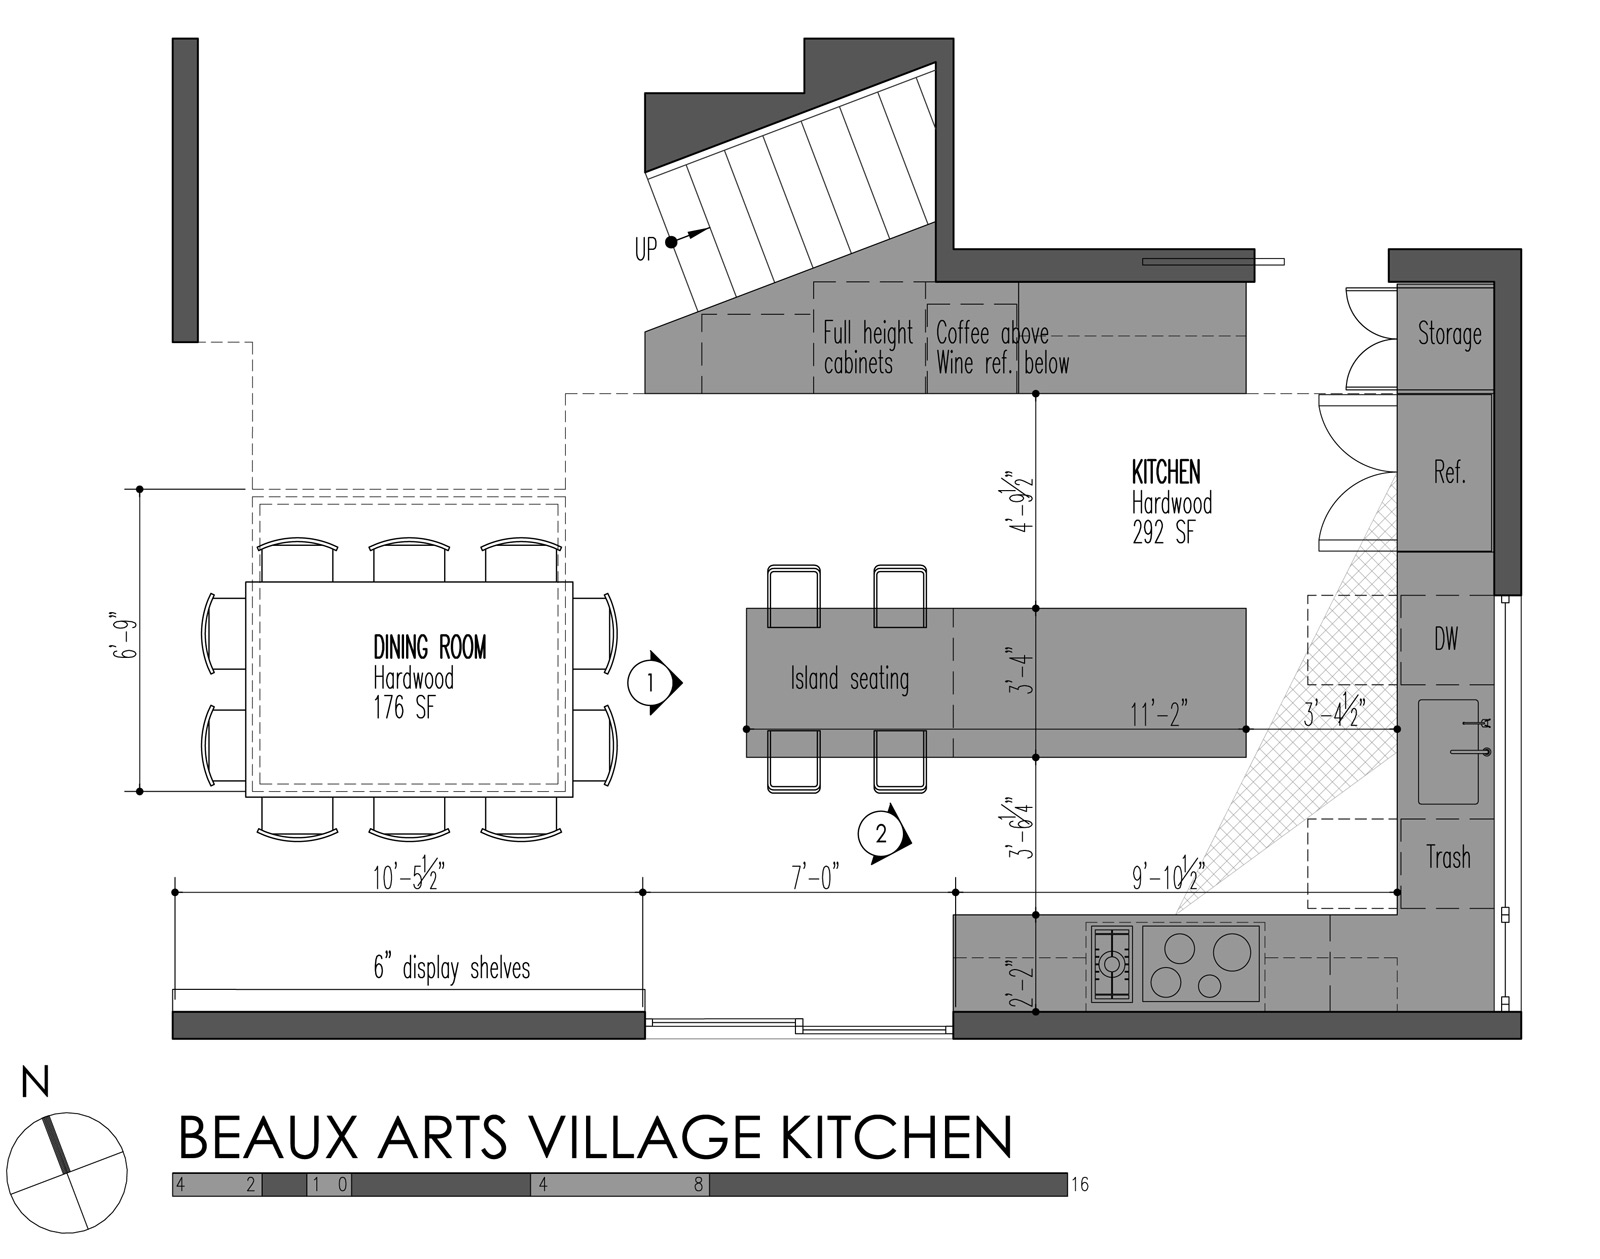 5 modern kitchen designs principles kitchen cabinet sizes BUILD LLC Beaux Arts Village Kitchen plan